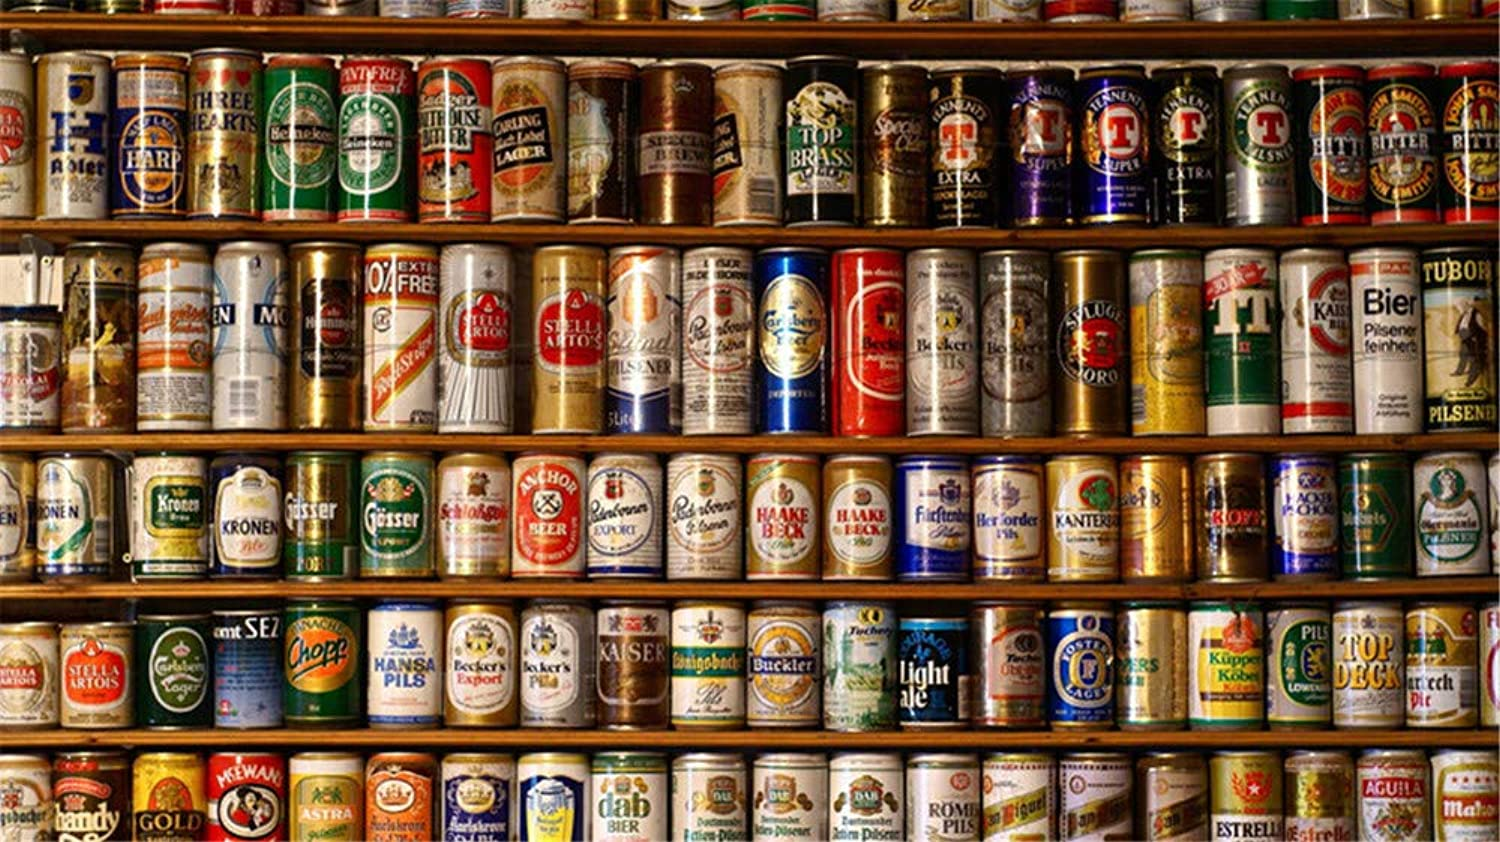 Jigsaw Puzzle 1000 Piece Wall of Beer Classic Puzzle DIY Kit Wooden Toy Unique Gift Home Decor